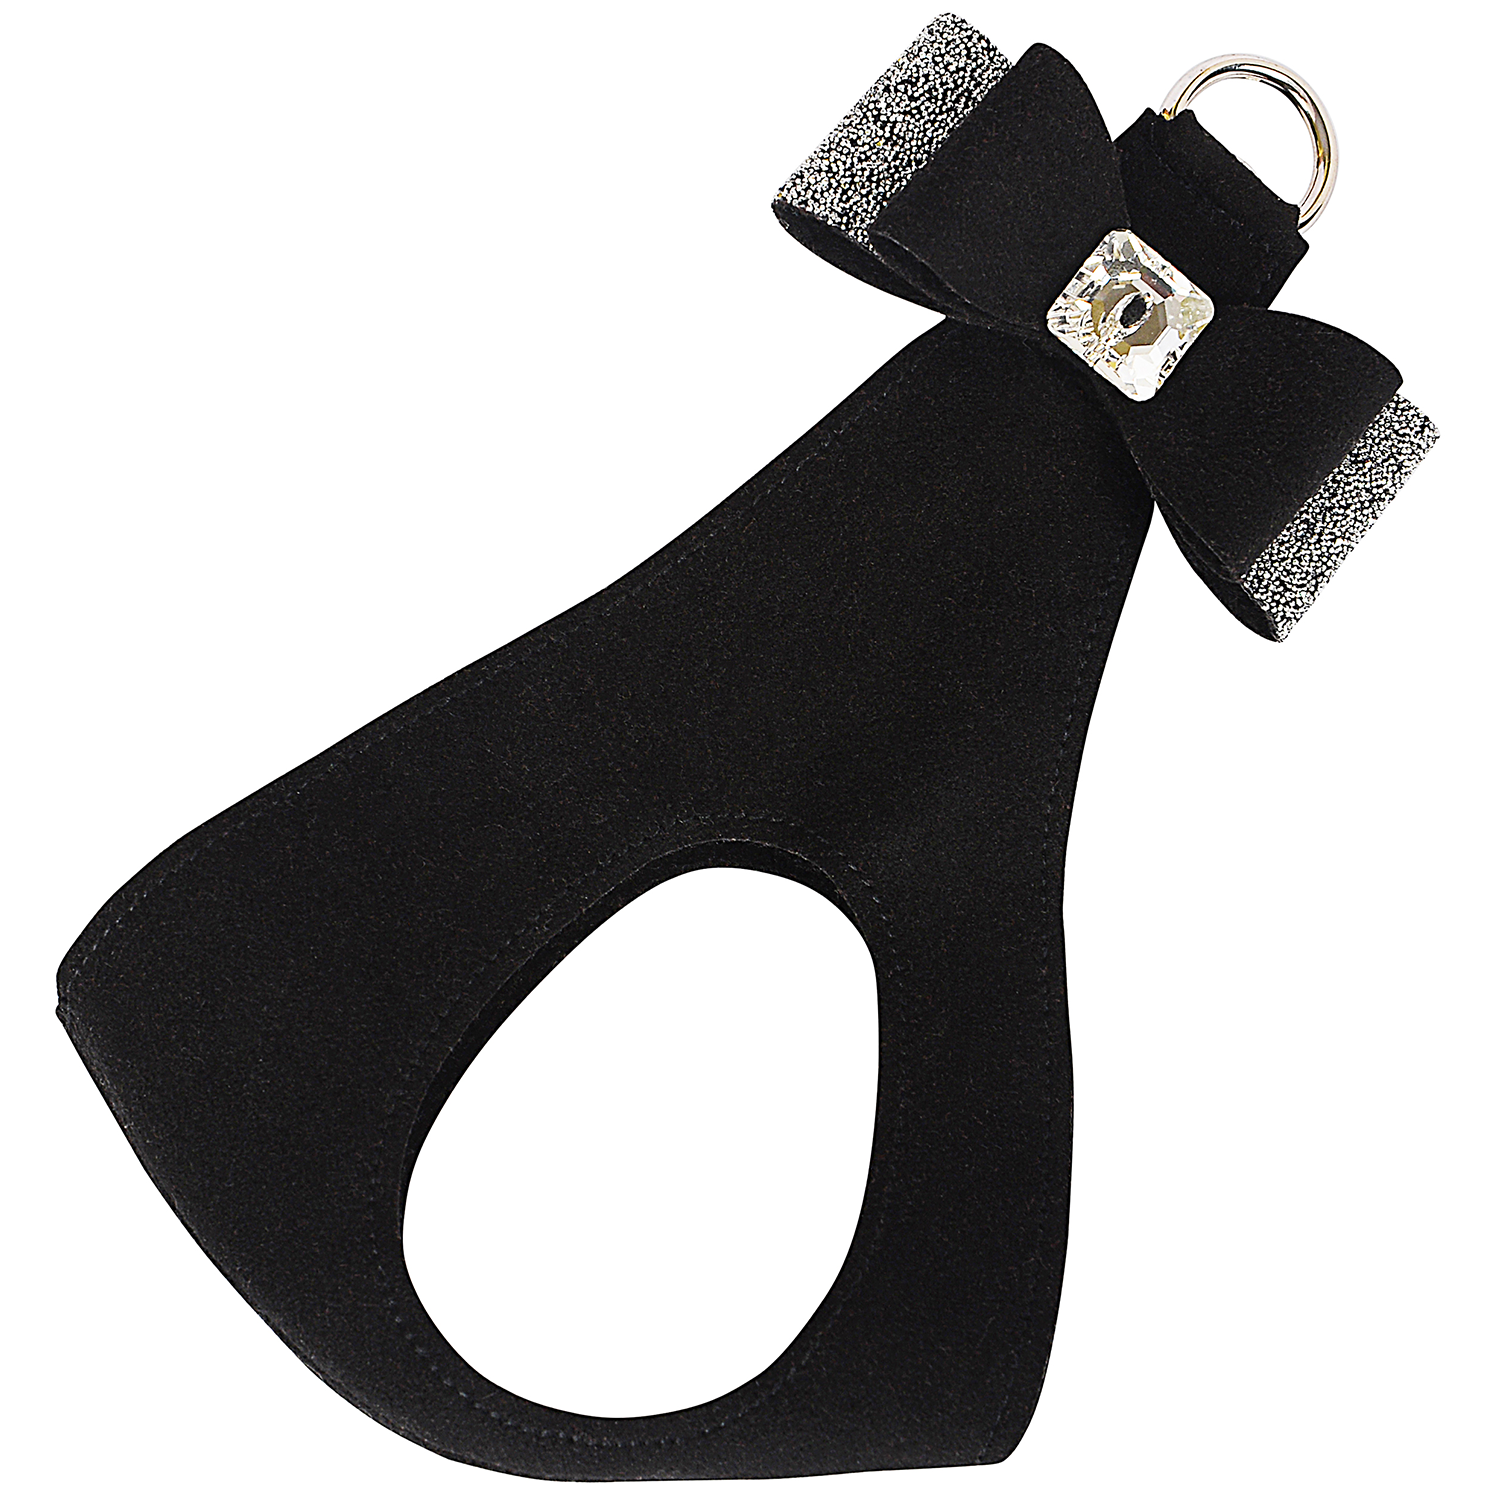 Crystal Stellar Big Bow Step-In Dog Harness: Black